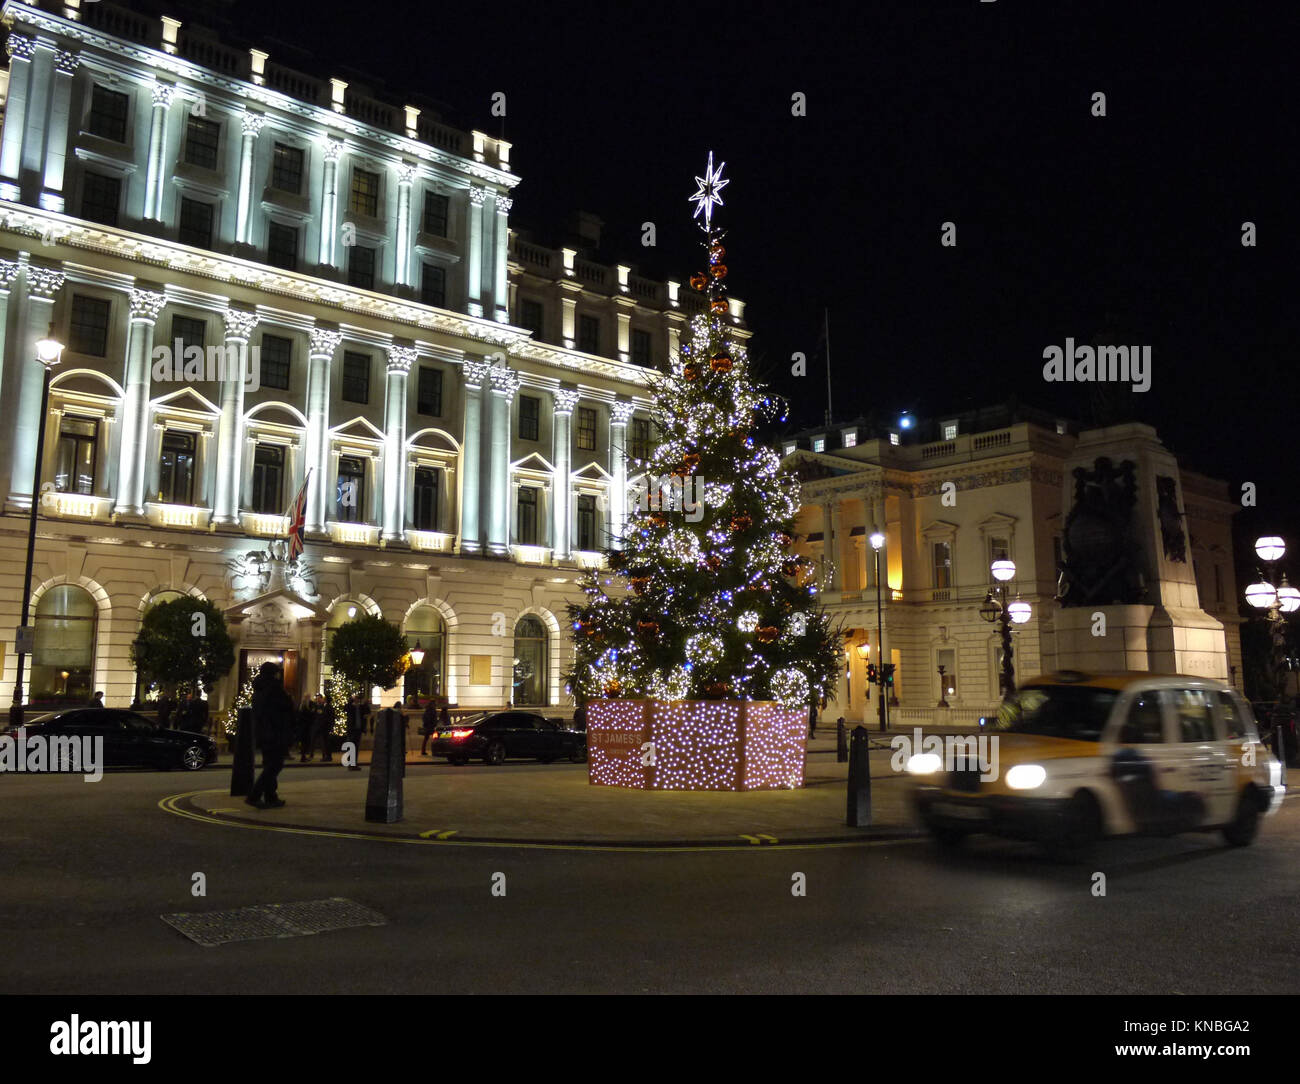 Christmas Places To Visit In London: Christmas Hotel London Stock Photos & Christmas Hotel